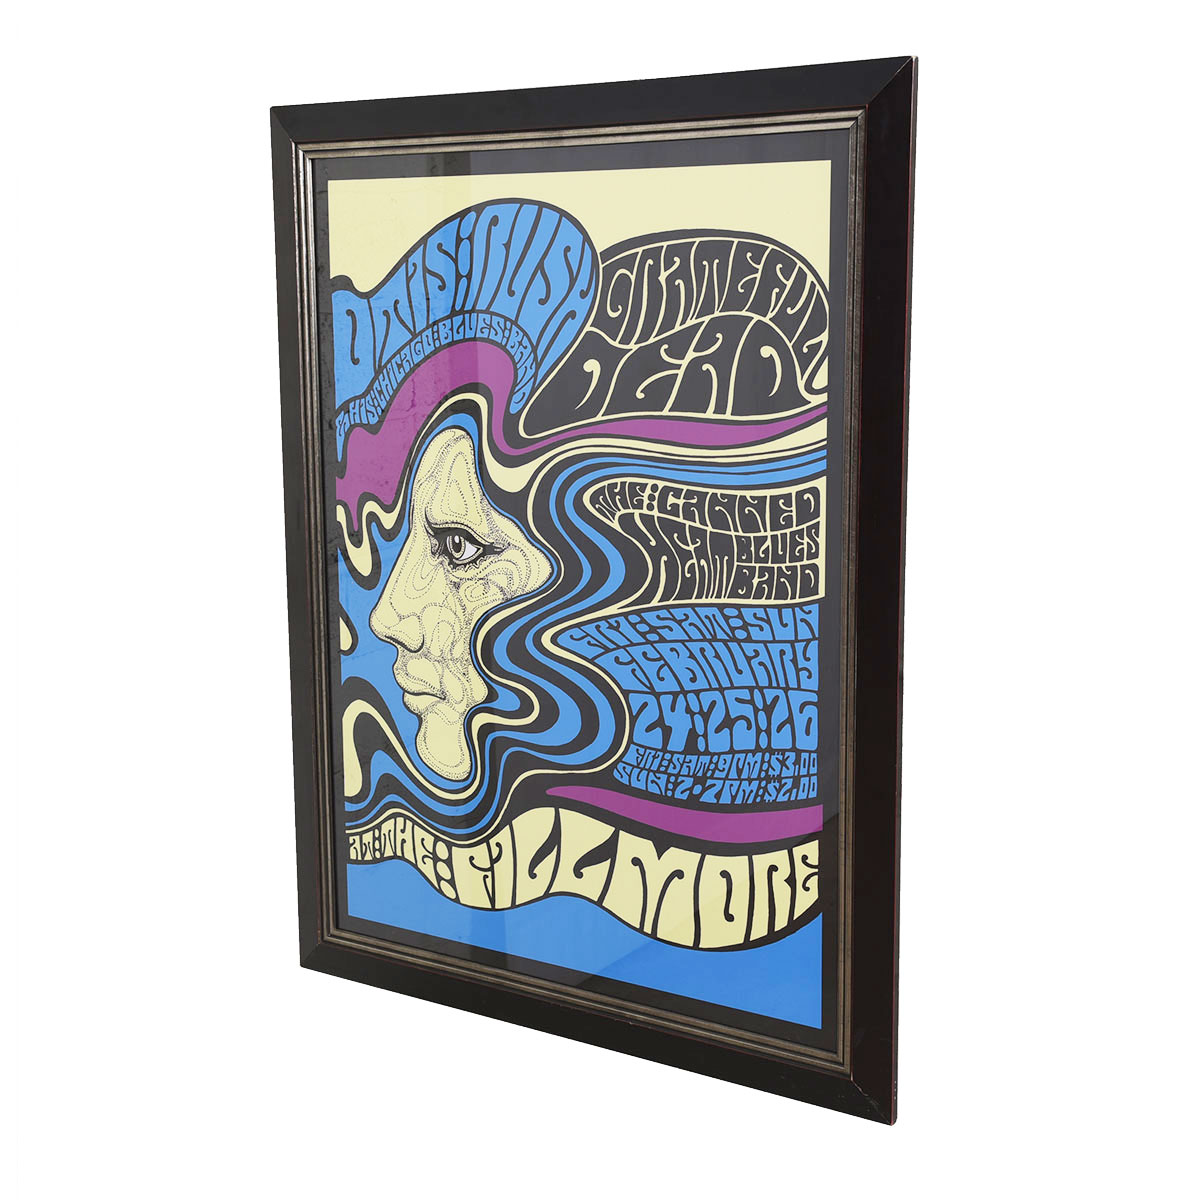 1967 Otis Rush & Chicago Blues Band, Canned Heat & The Grateful Dead at the Fillmore Poster